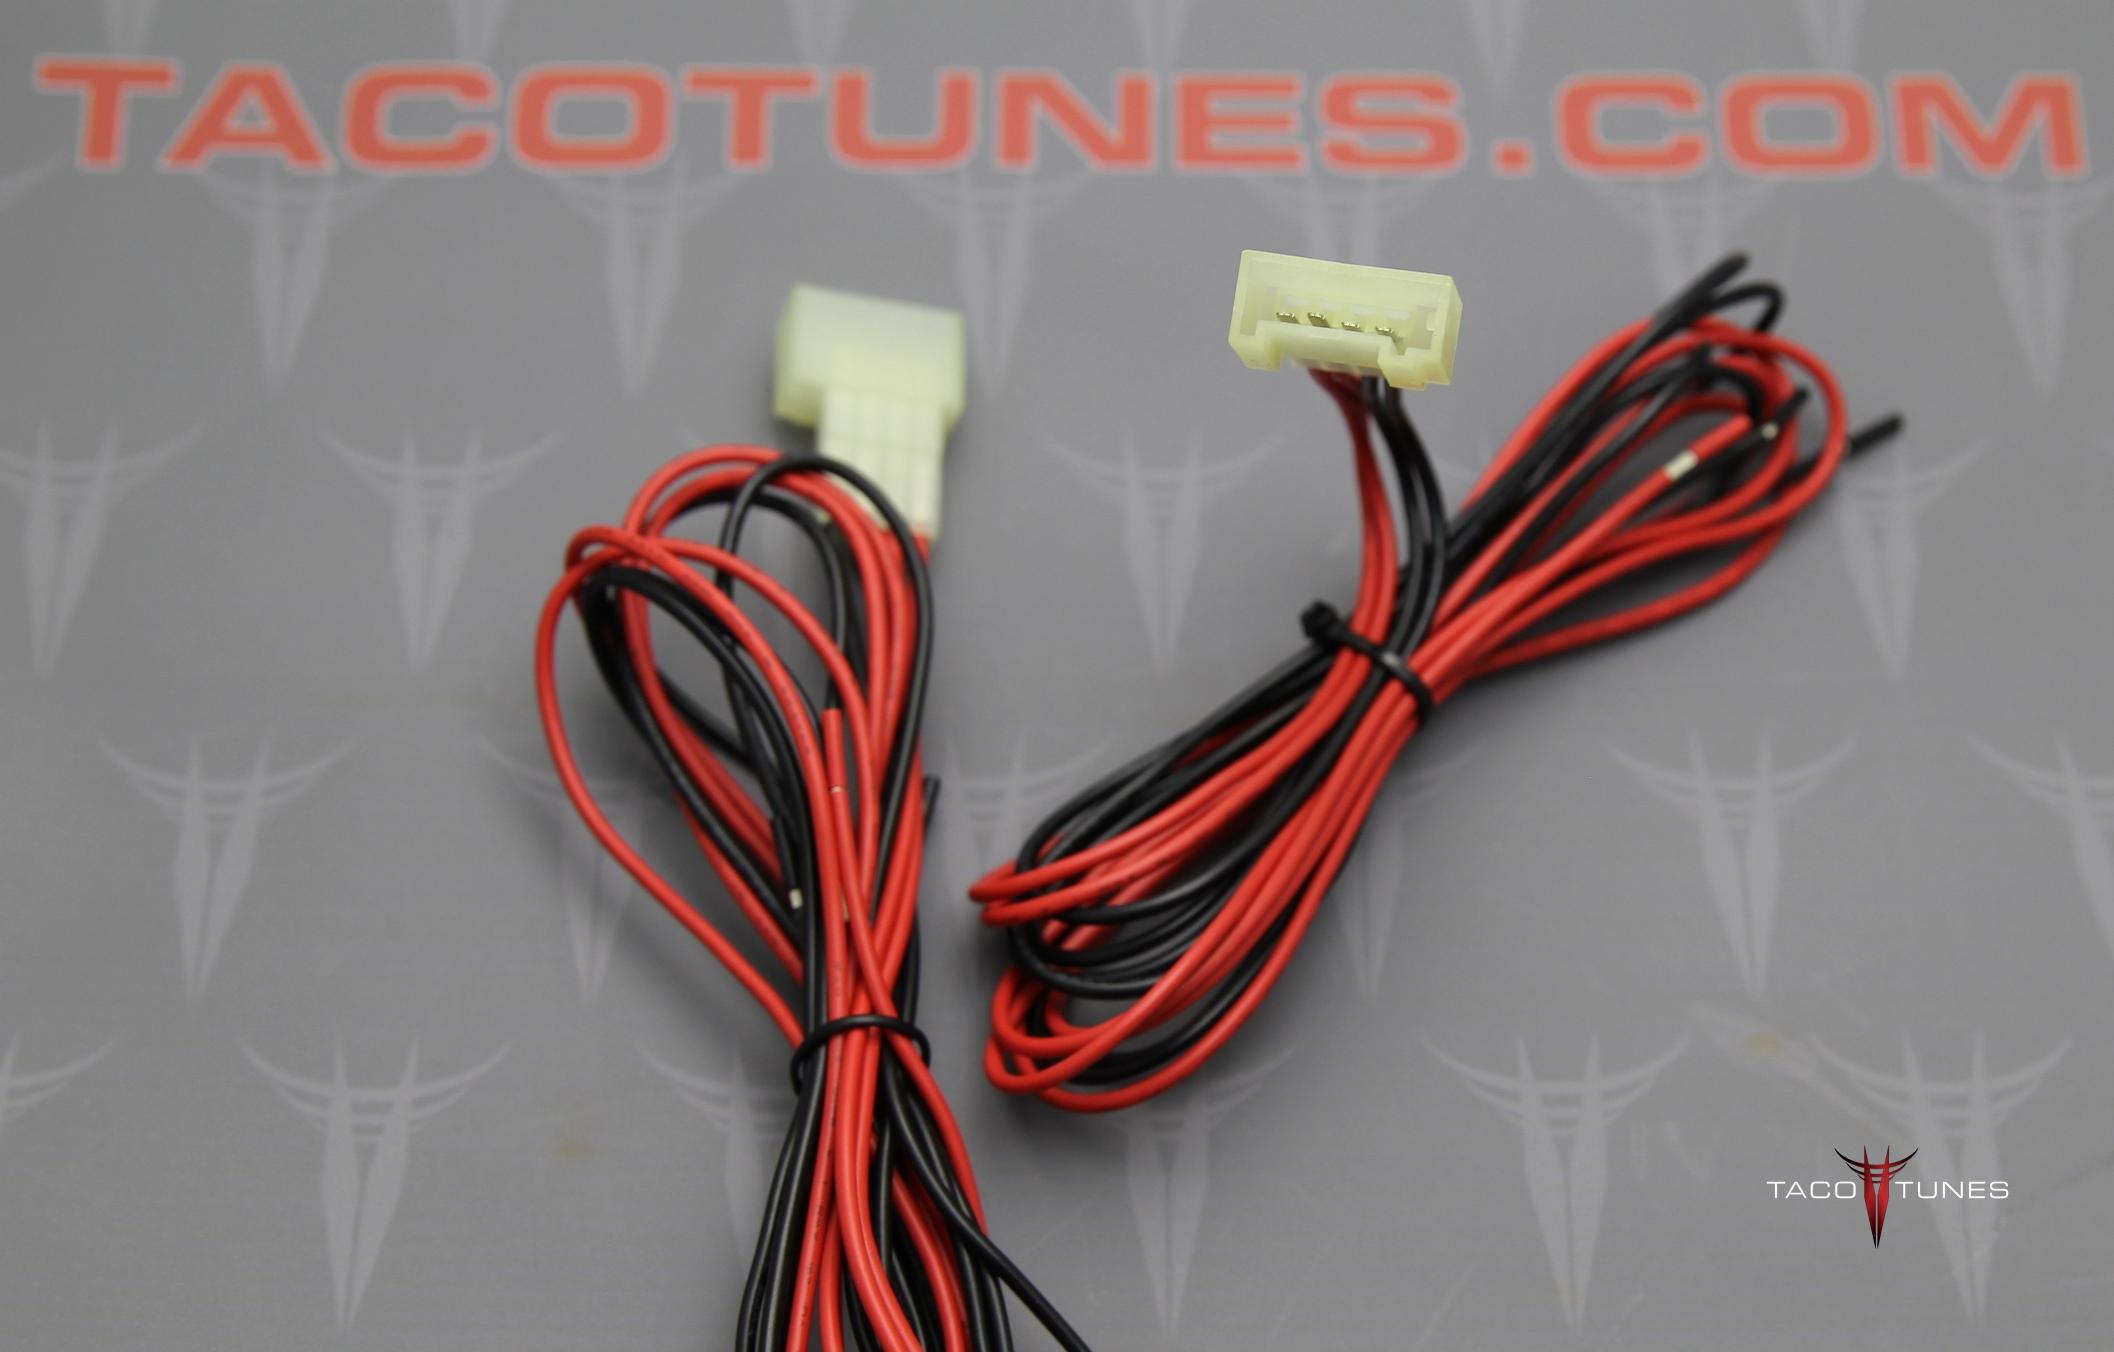 Wiring Harness For 2005 Toyota Corolla Toyota Corolla Wiring – Infinity 36670 Wiring Diagram56043029ac